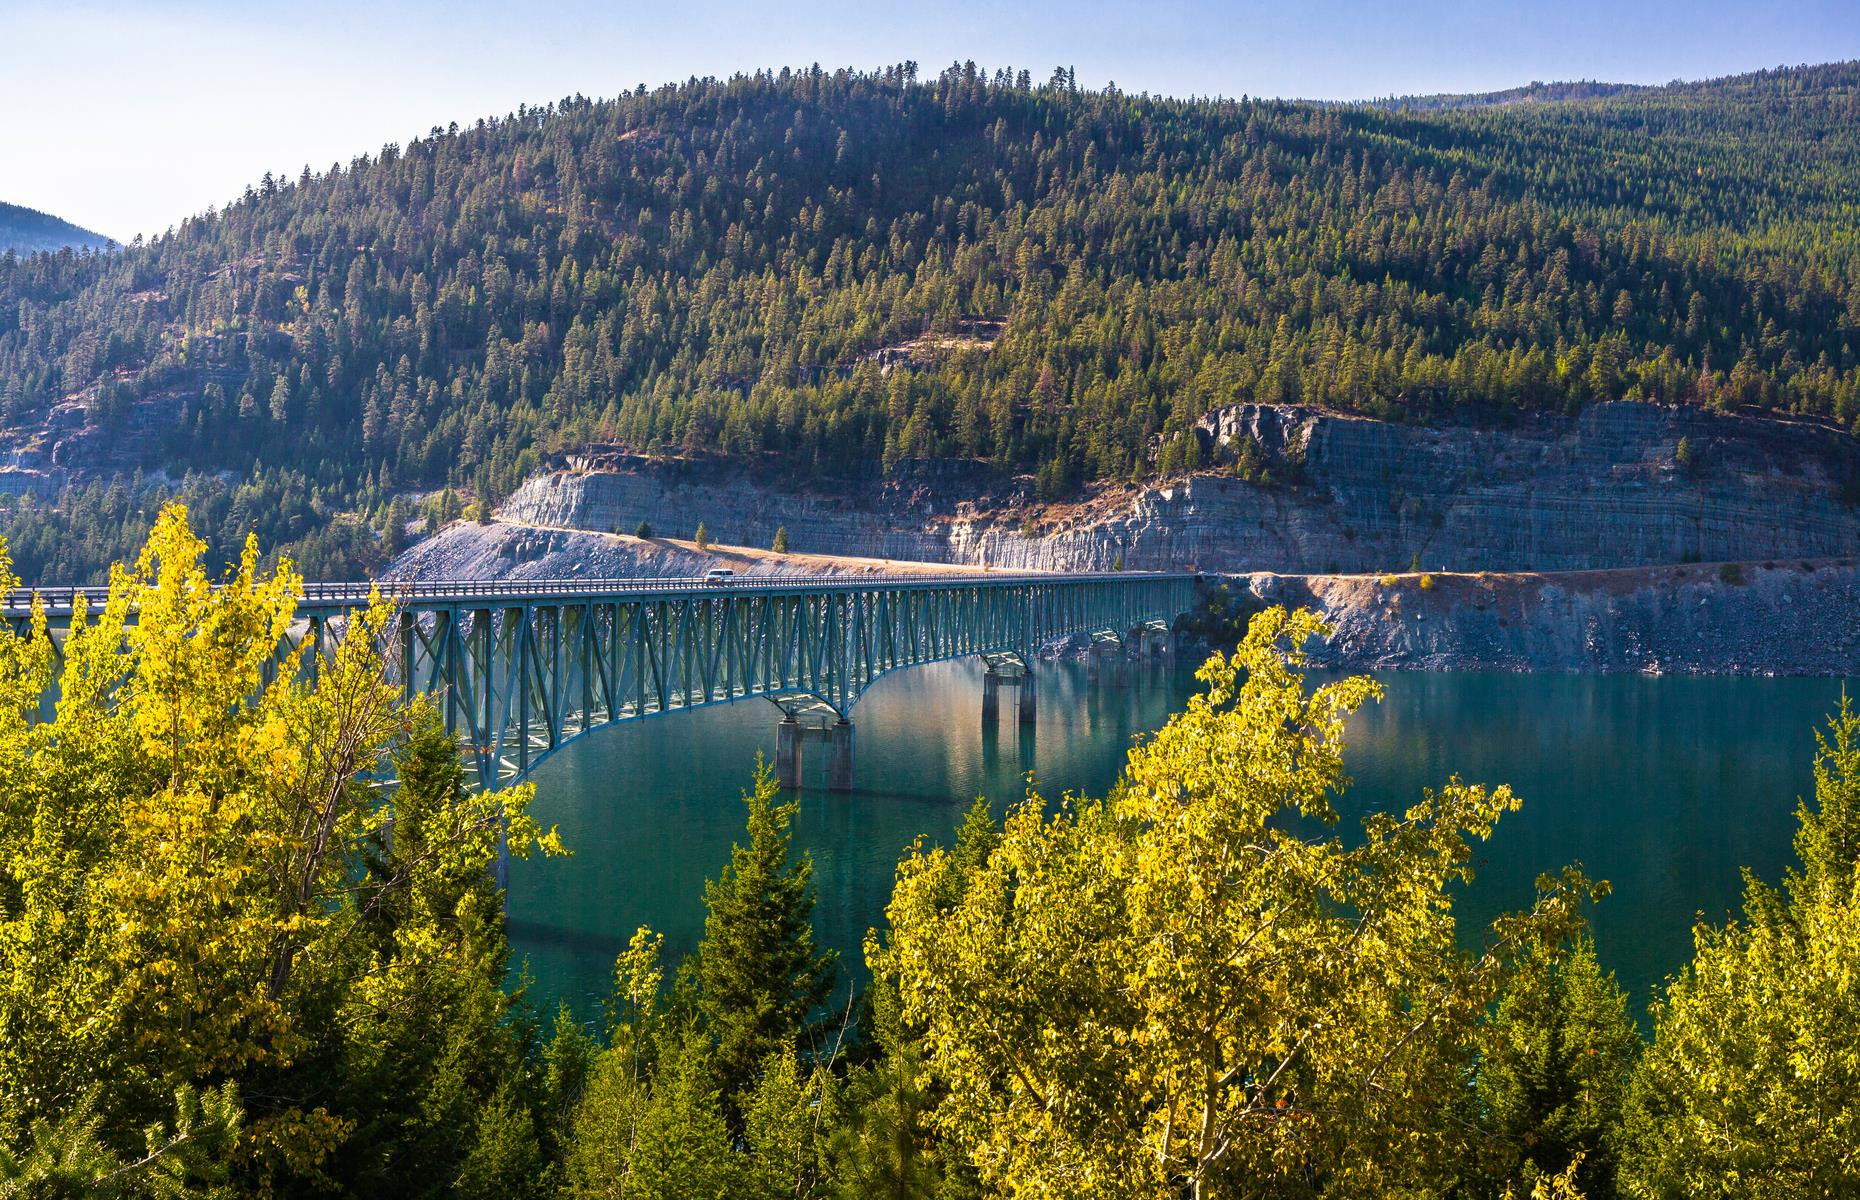 Slide 28 of 52: This bridge is the longest and tallest in Montana – but it's anything but imposing. Pale green in color, it's practically the same hue as glassy Lake Koocanusa which swirls below. It leads to the unspoiled Yaak Valley with its lush forestland and lakes.